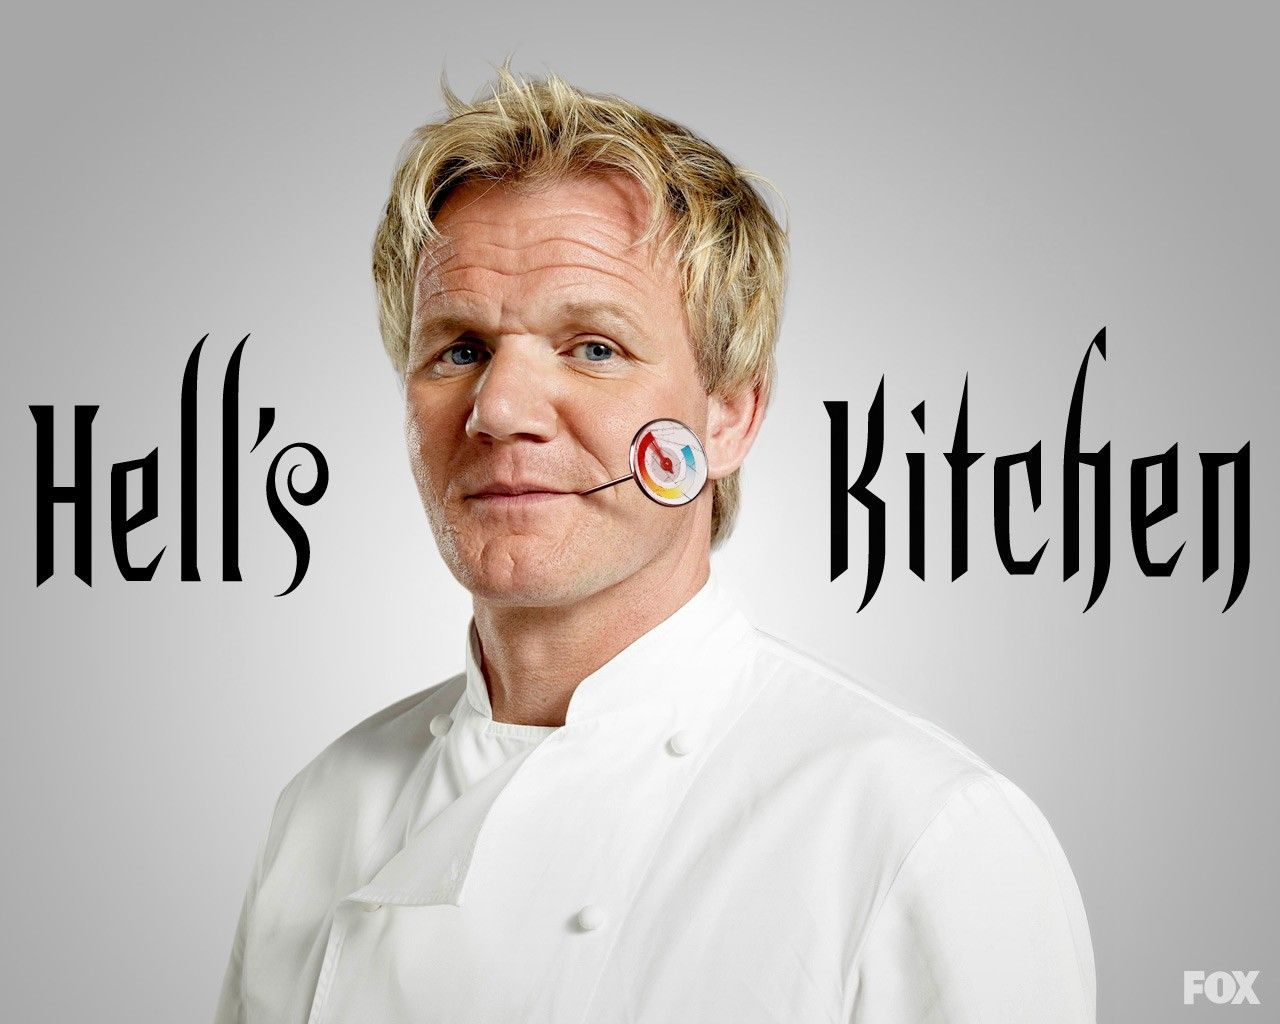 hell's kitchen |  hell s kitchen wallpaper 20027719 size